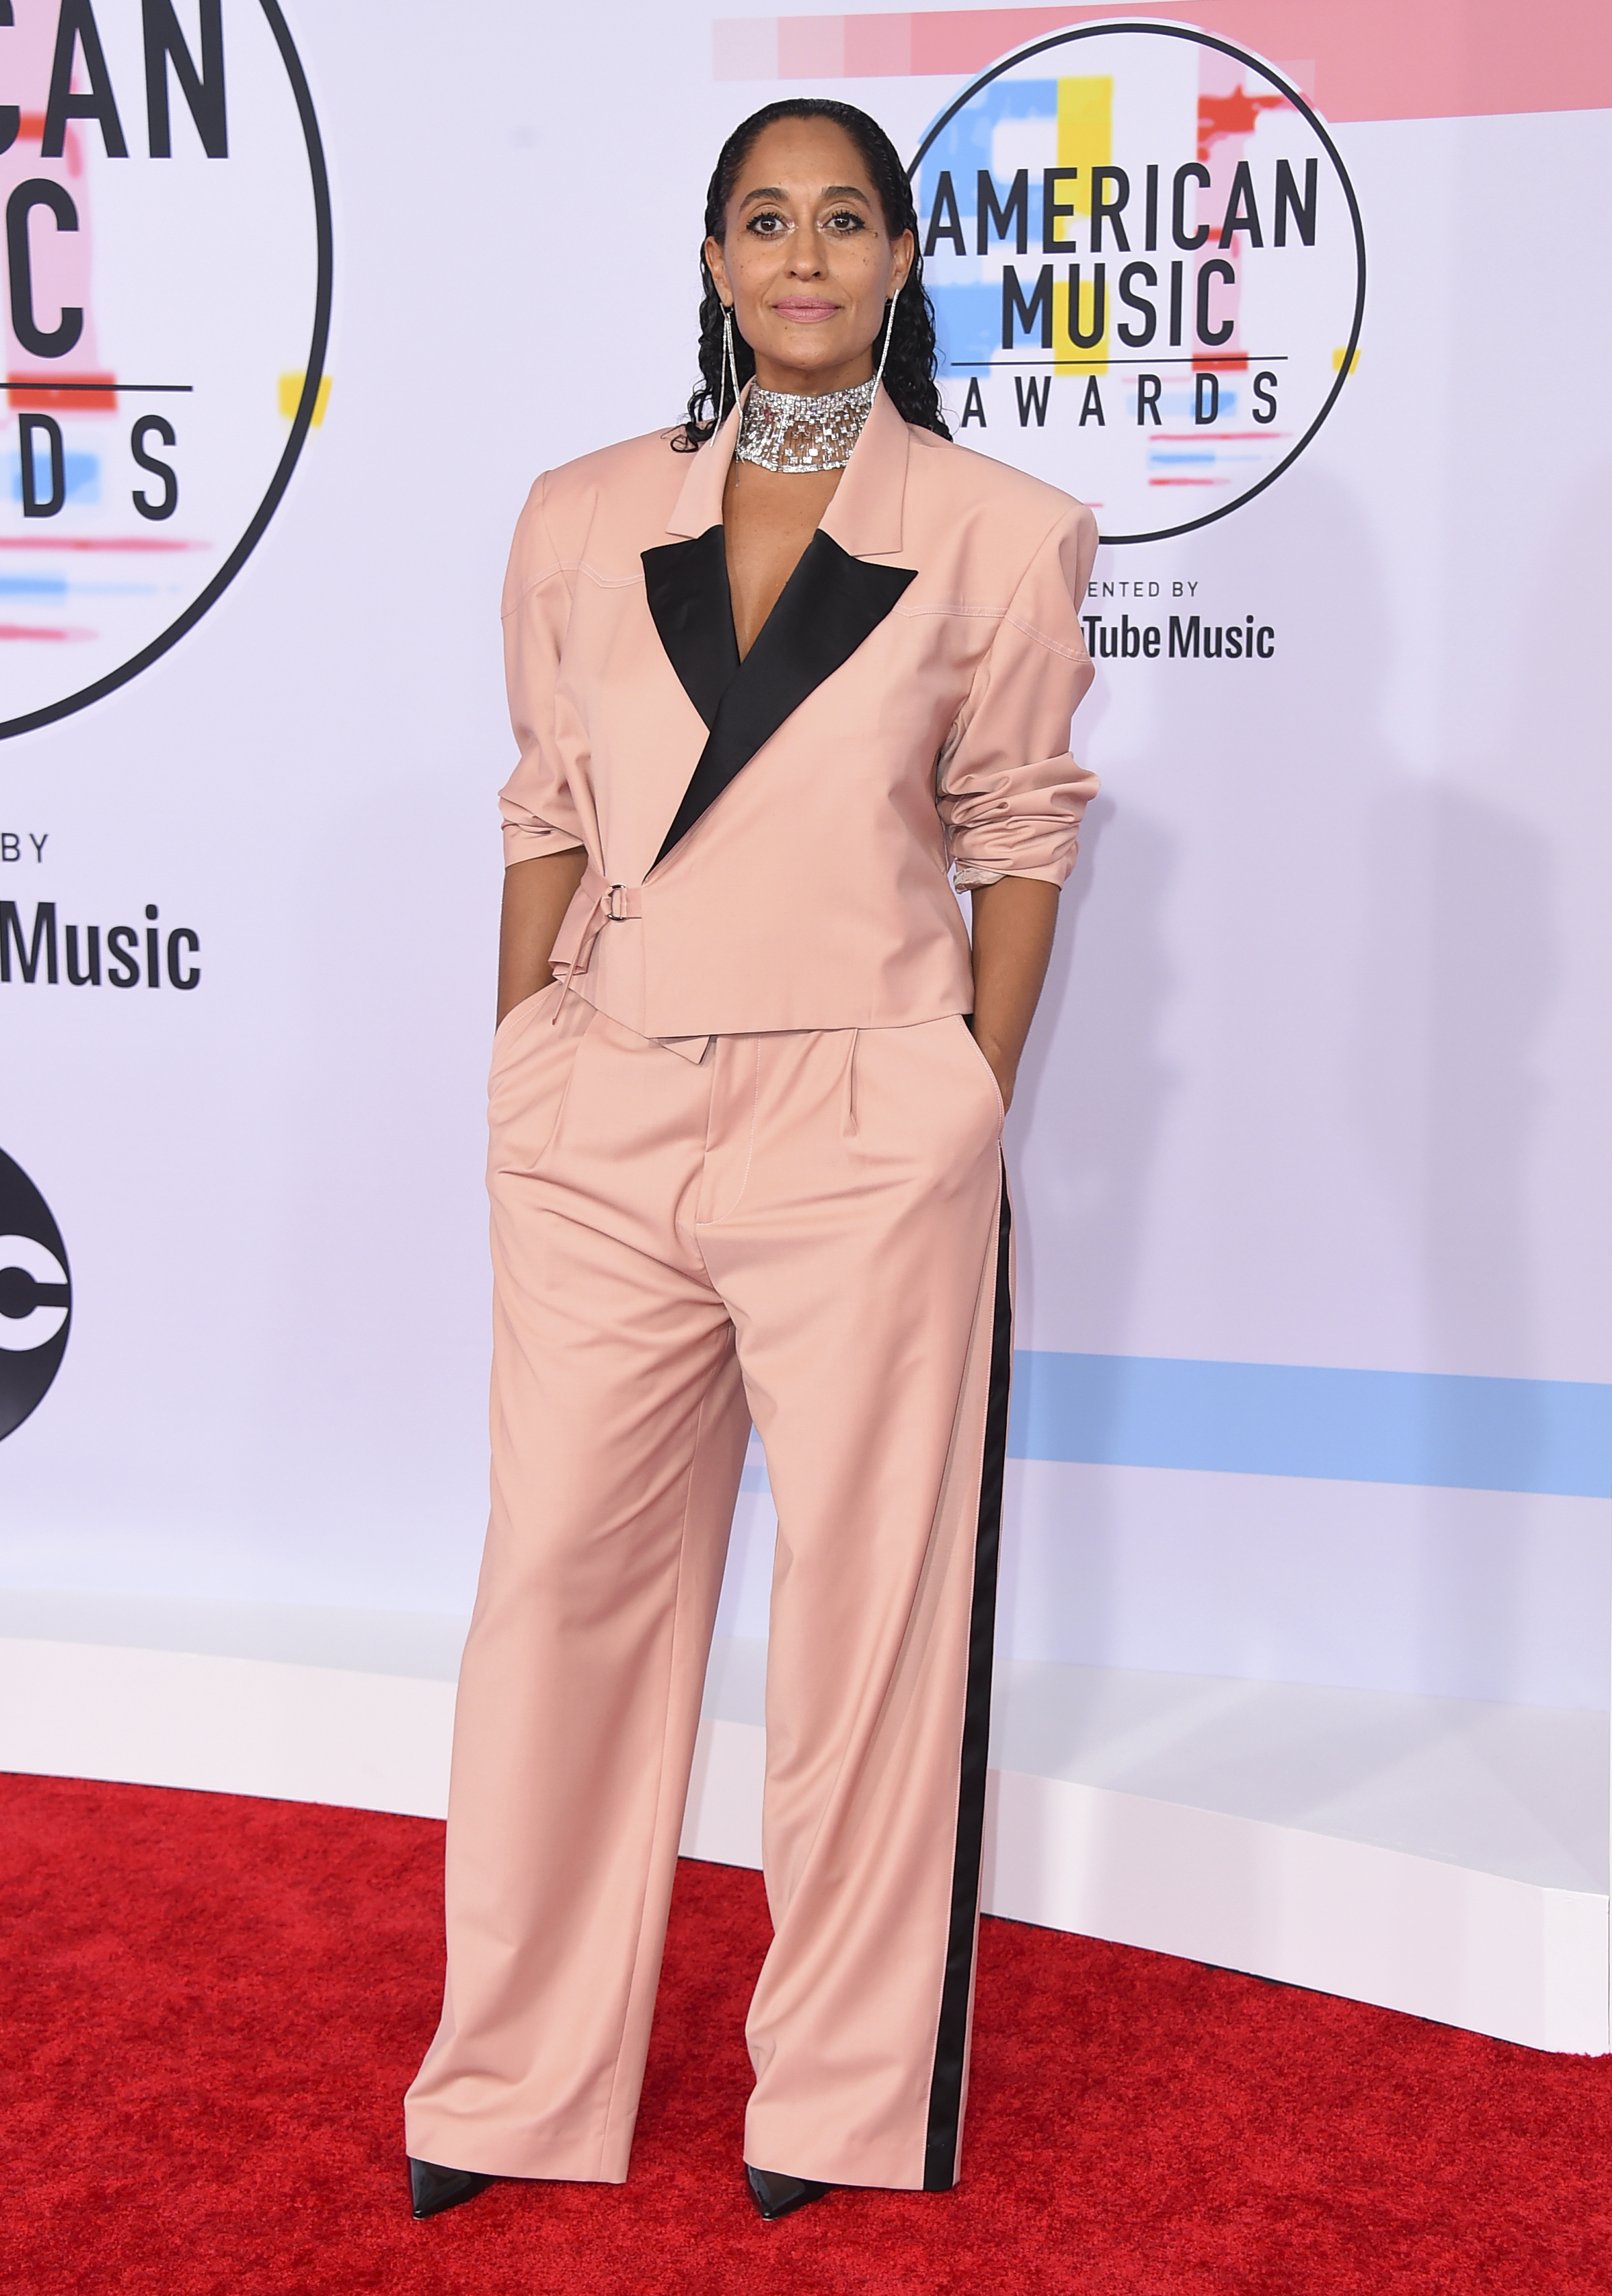 "<div class=""meta image-caption""><div class=""origin-logo origin-image ap""><span>AP</span></div><span class=""caption-text"">Tracee Ellis Ross arrives at the American Music Awards on Tuesday, Oct. 9, 2018, at the Microsoft Theater in Los Angeles. (Jordan Strauss/Invision/AP)</span></div>"